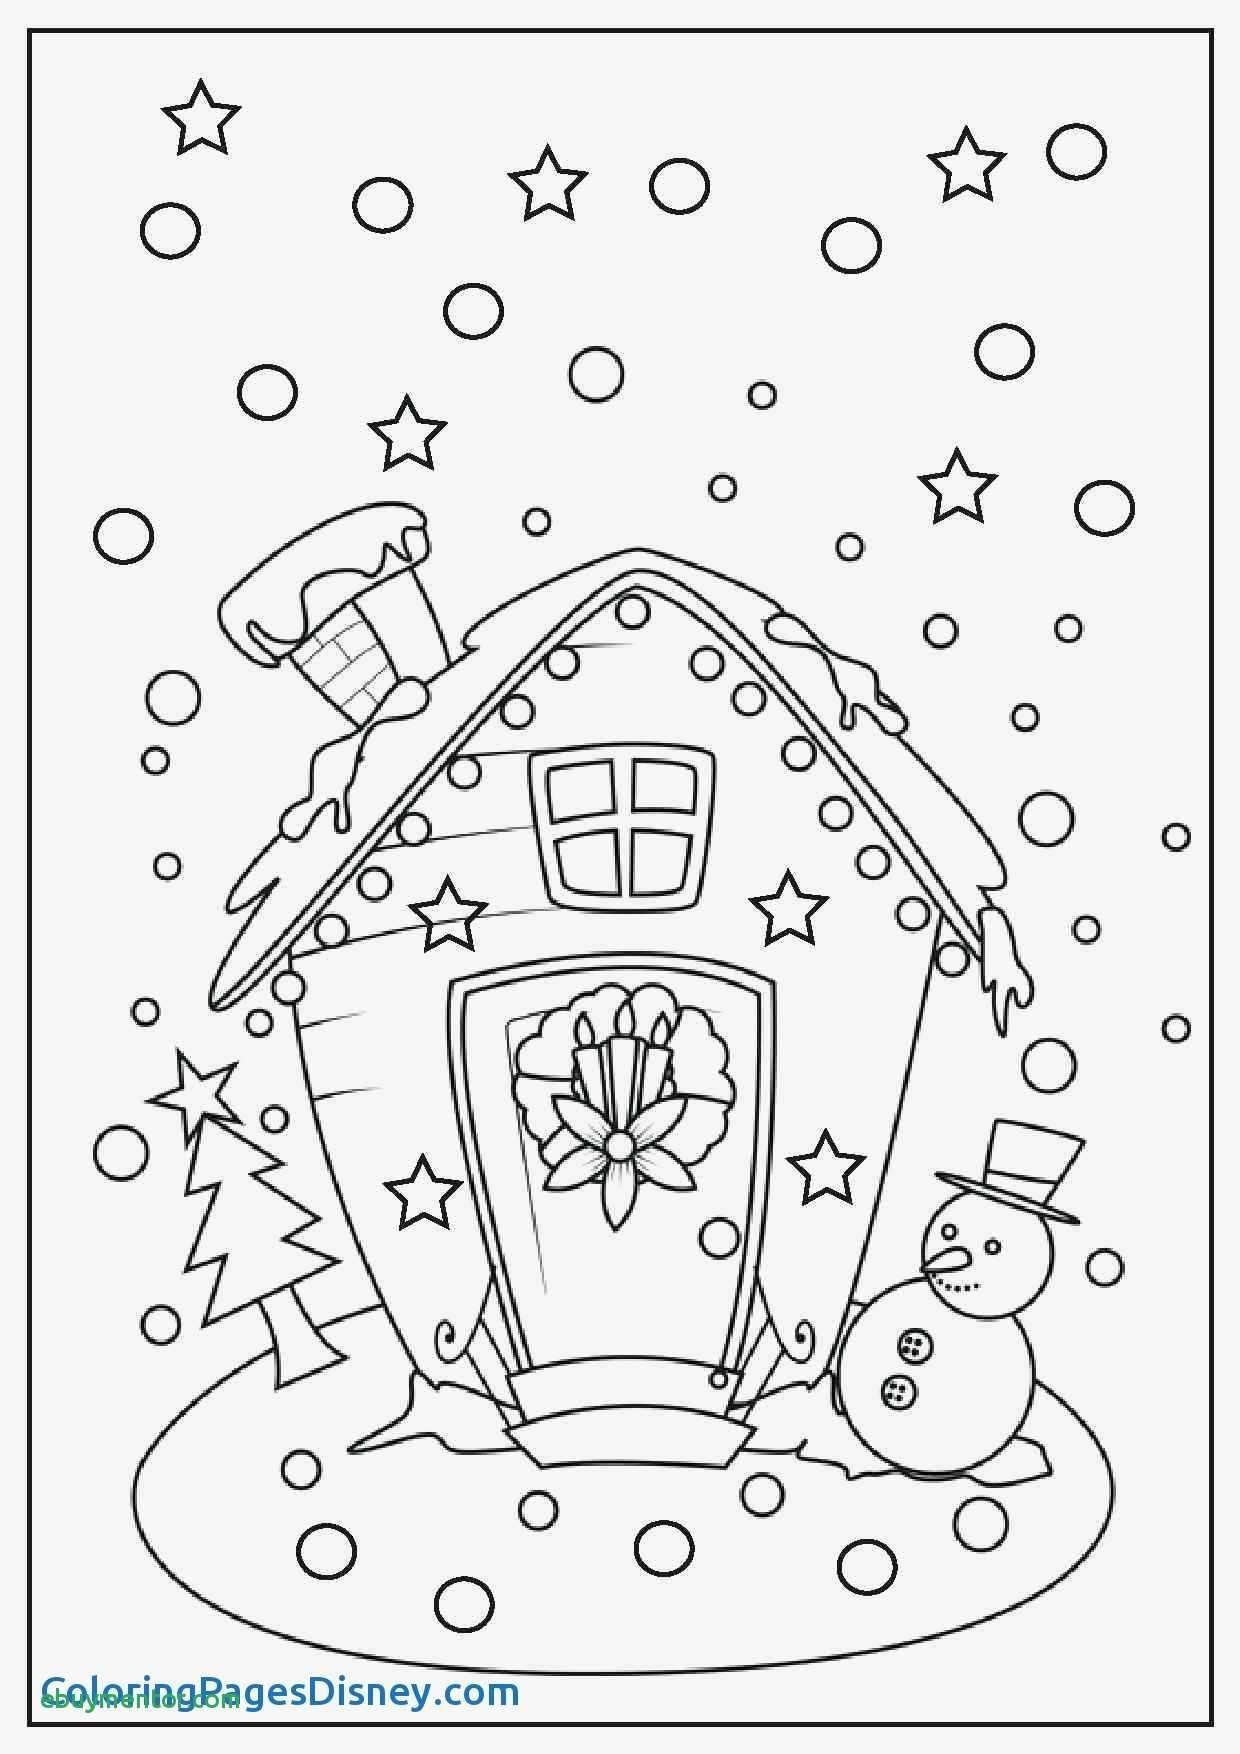 Christmas Room Colouring Card. Nativity Scene Christmas Tree Cards - Free Printable Christmas Cards To Color